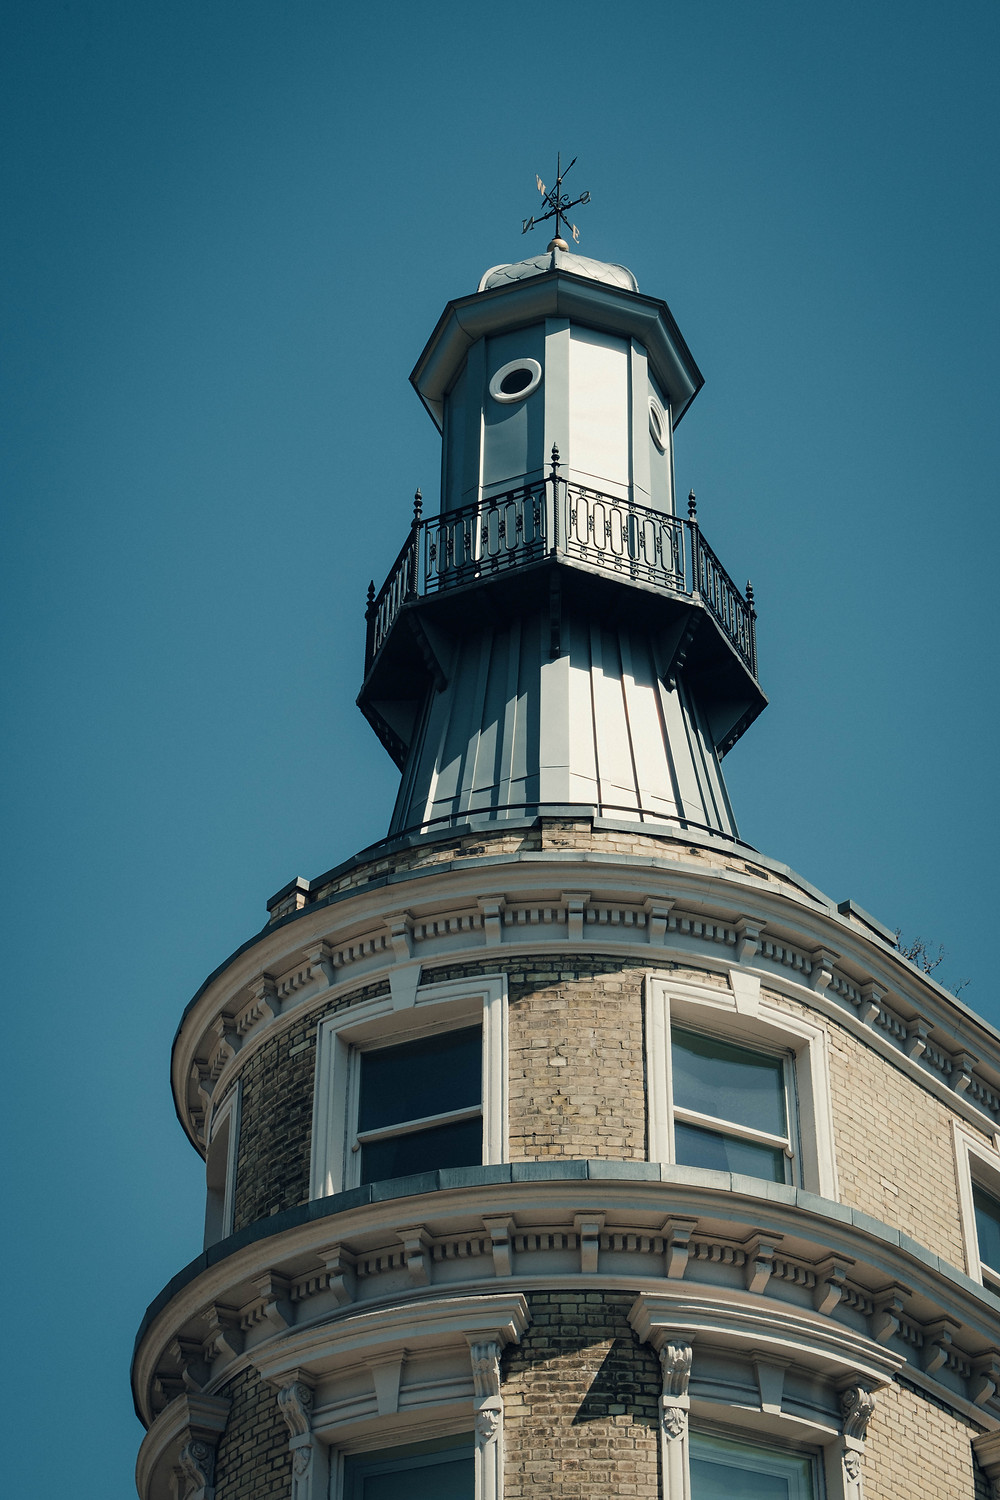 A photograph of the top of the lighthouse in Kings Cross